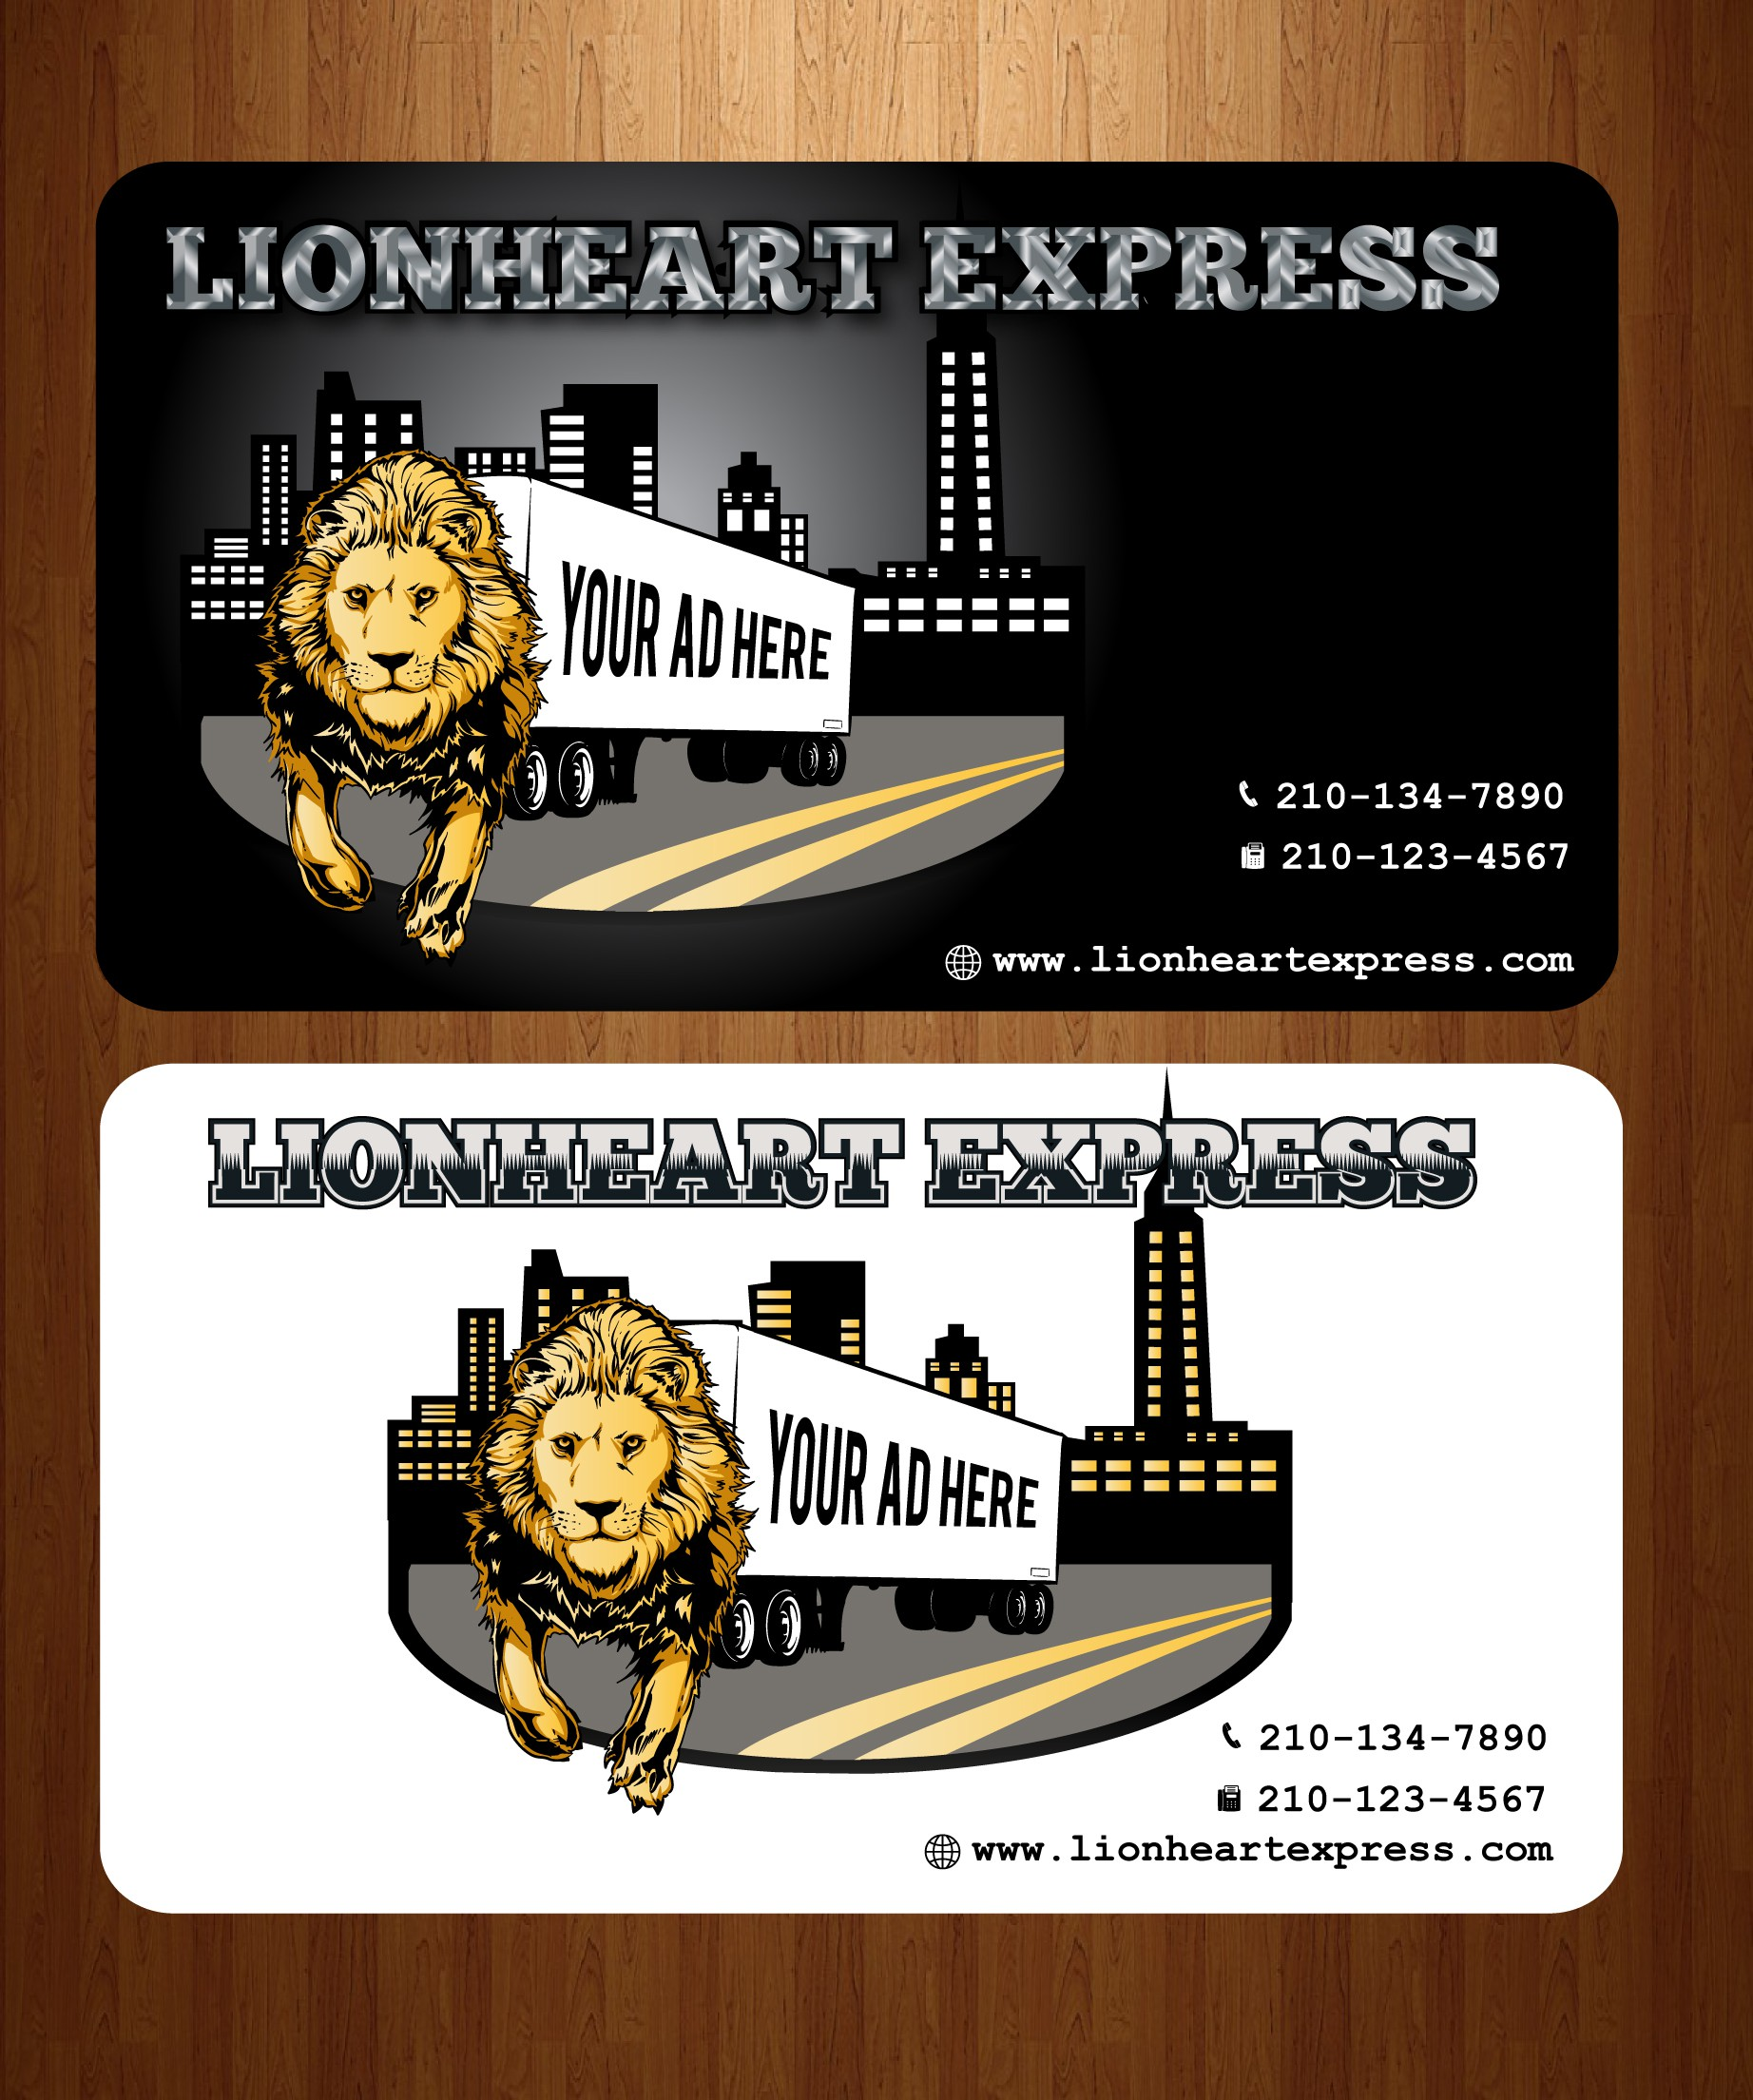 New logo wanted for LIONHEART EXPRESS